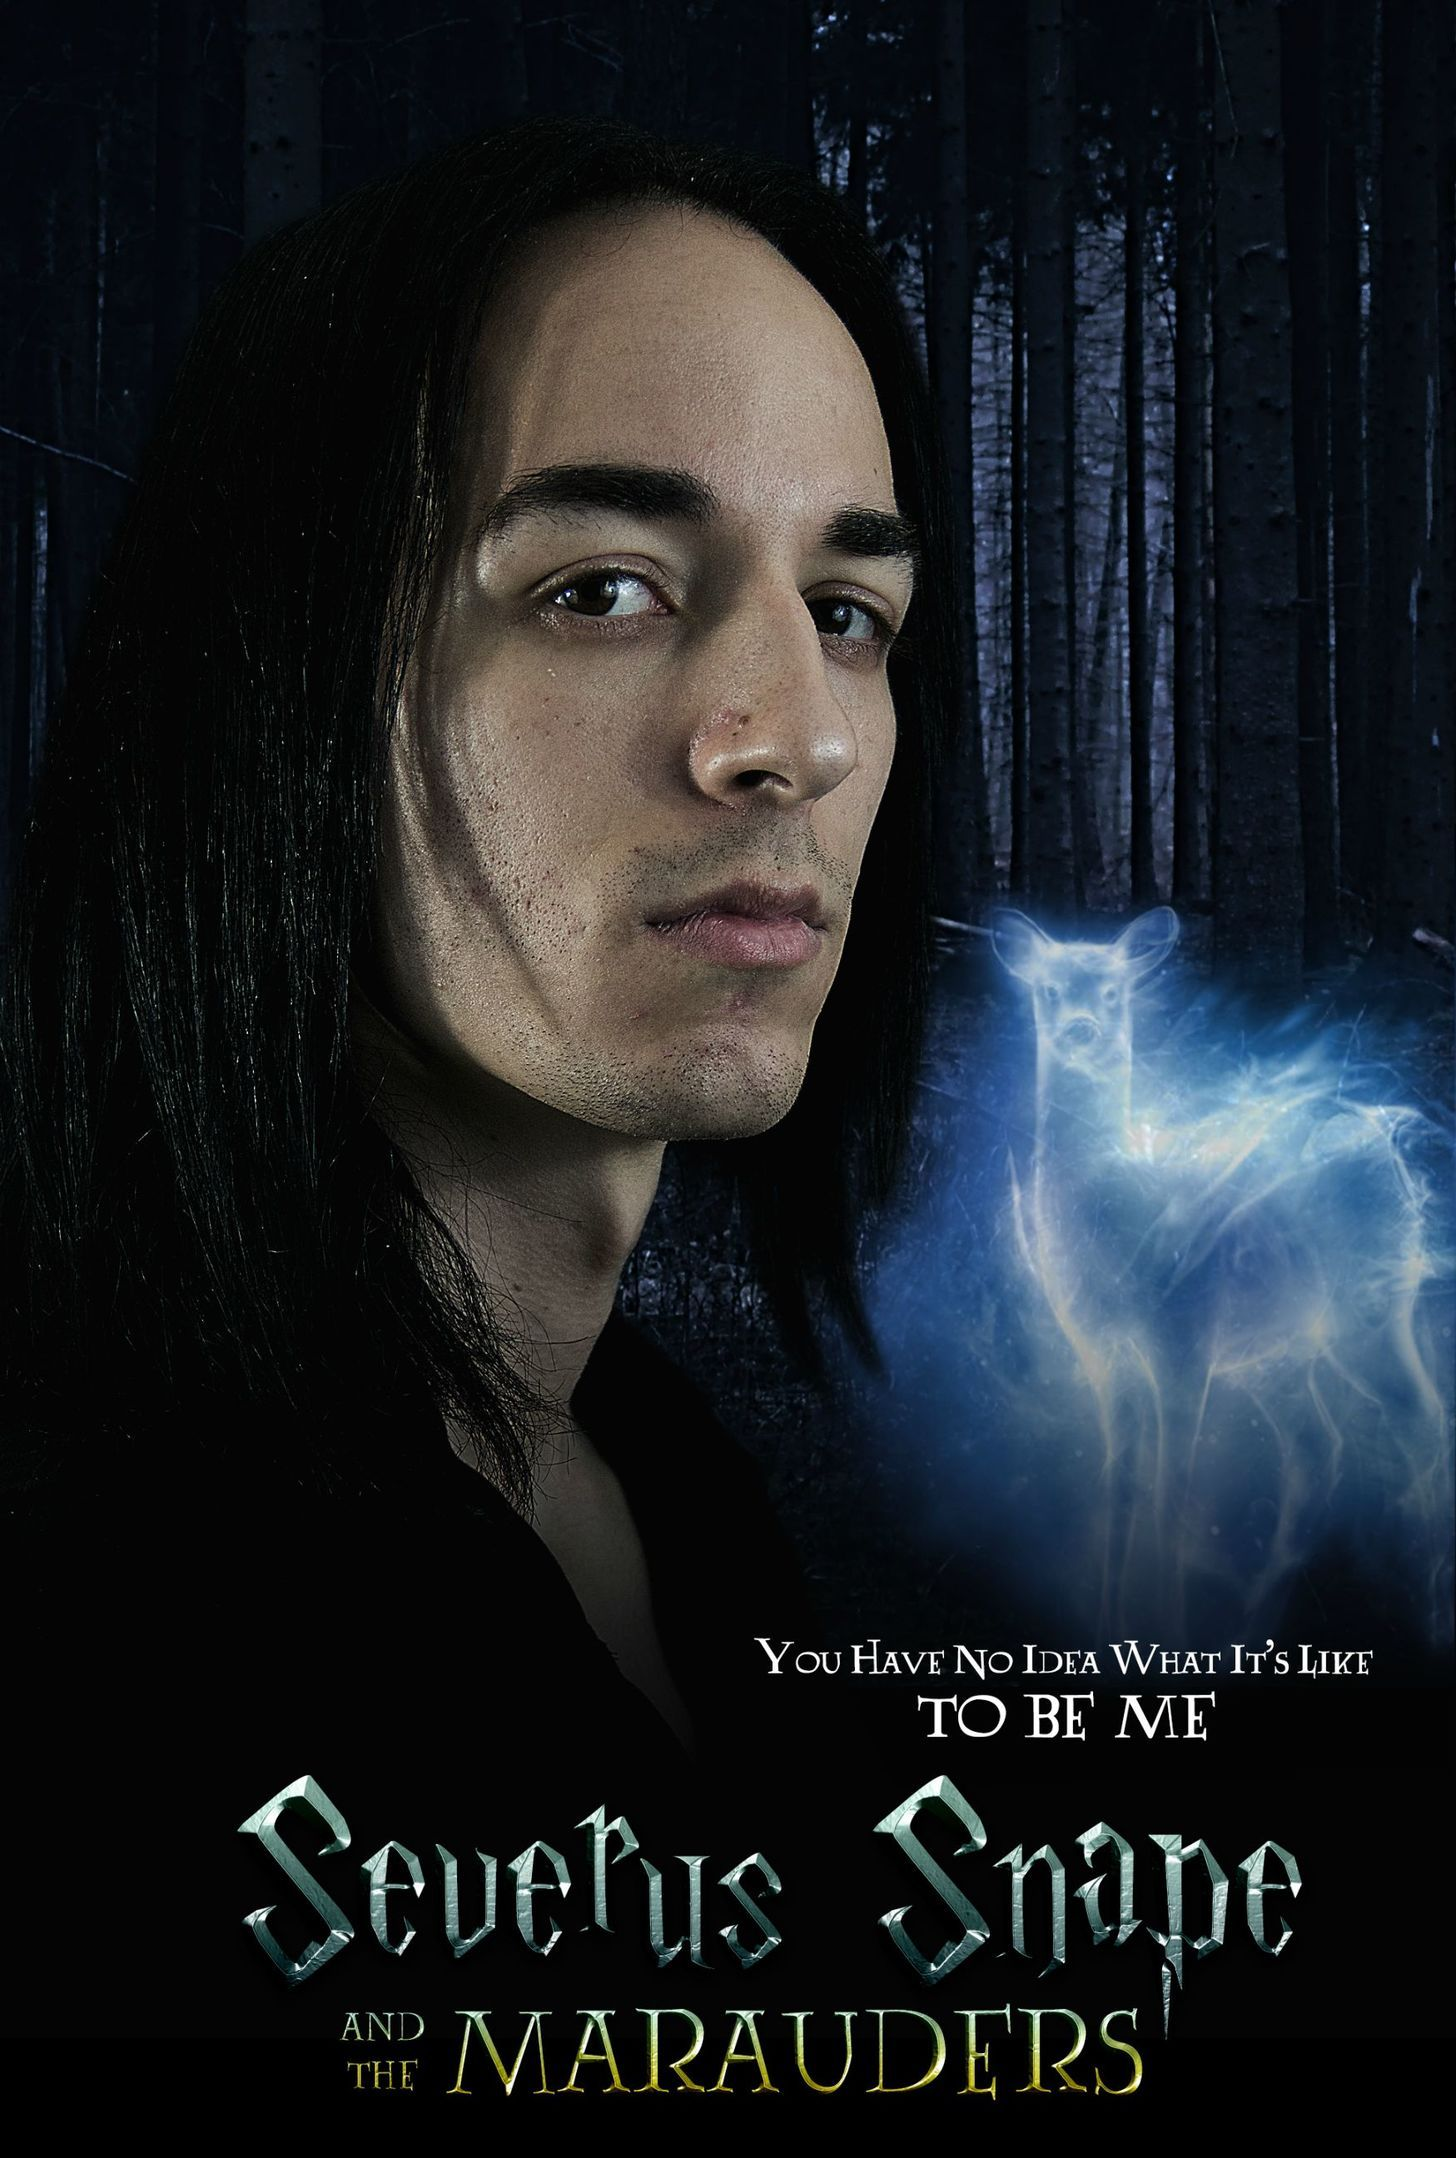 Snape And The Marauders A Harry Potter Fan Film Fundraiser For Indiegogo Harry Potter Severus Harry Potter Severus Snape Harry Potter Prequel